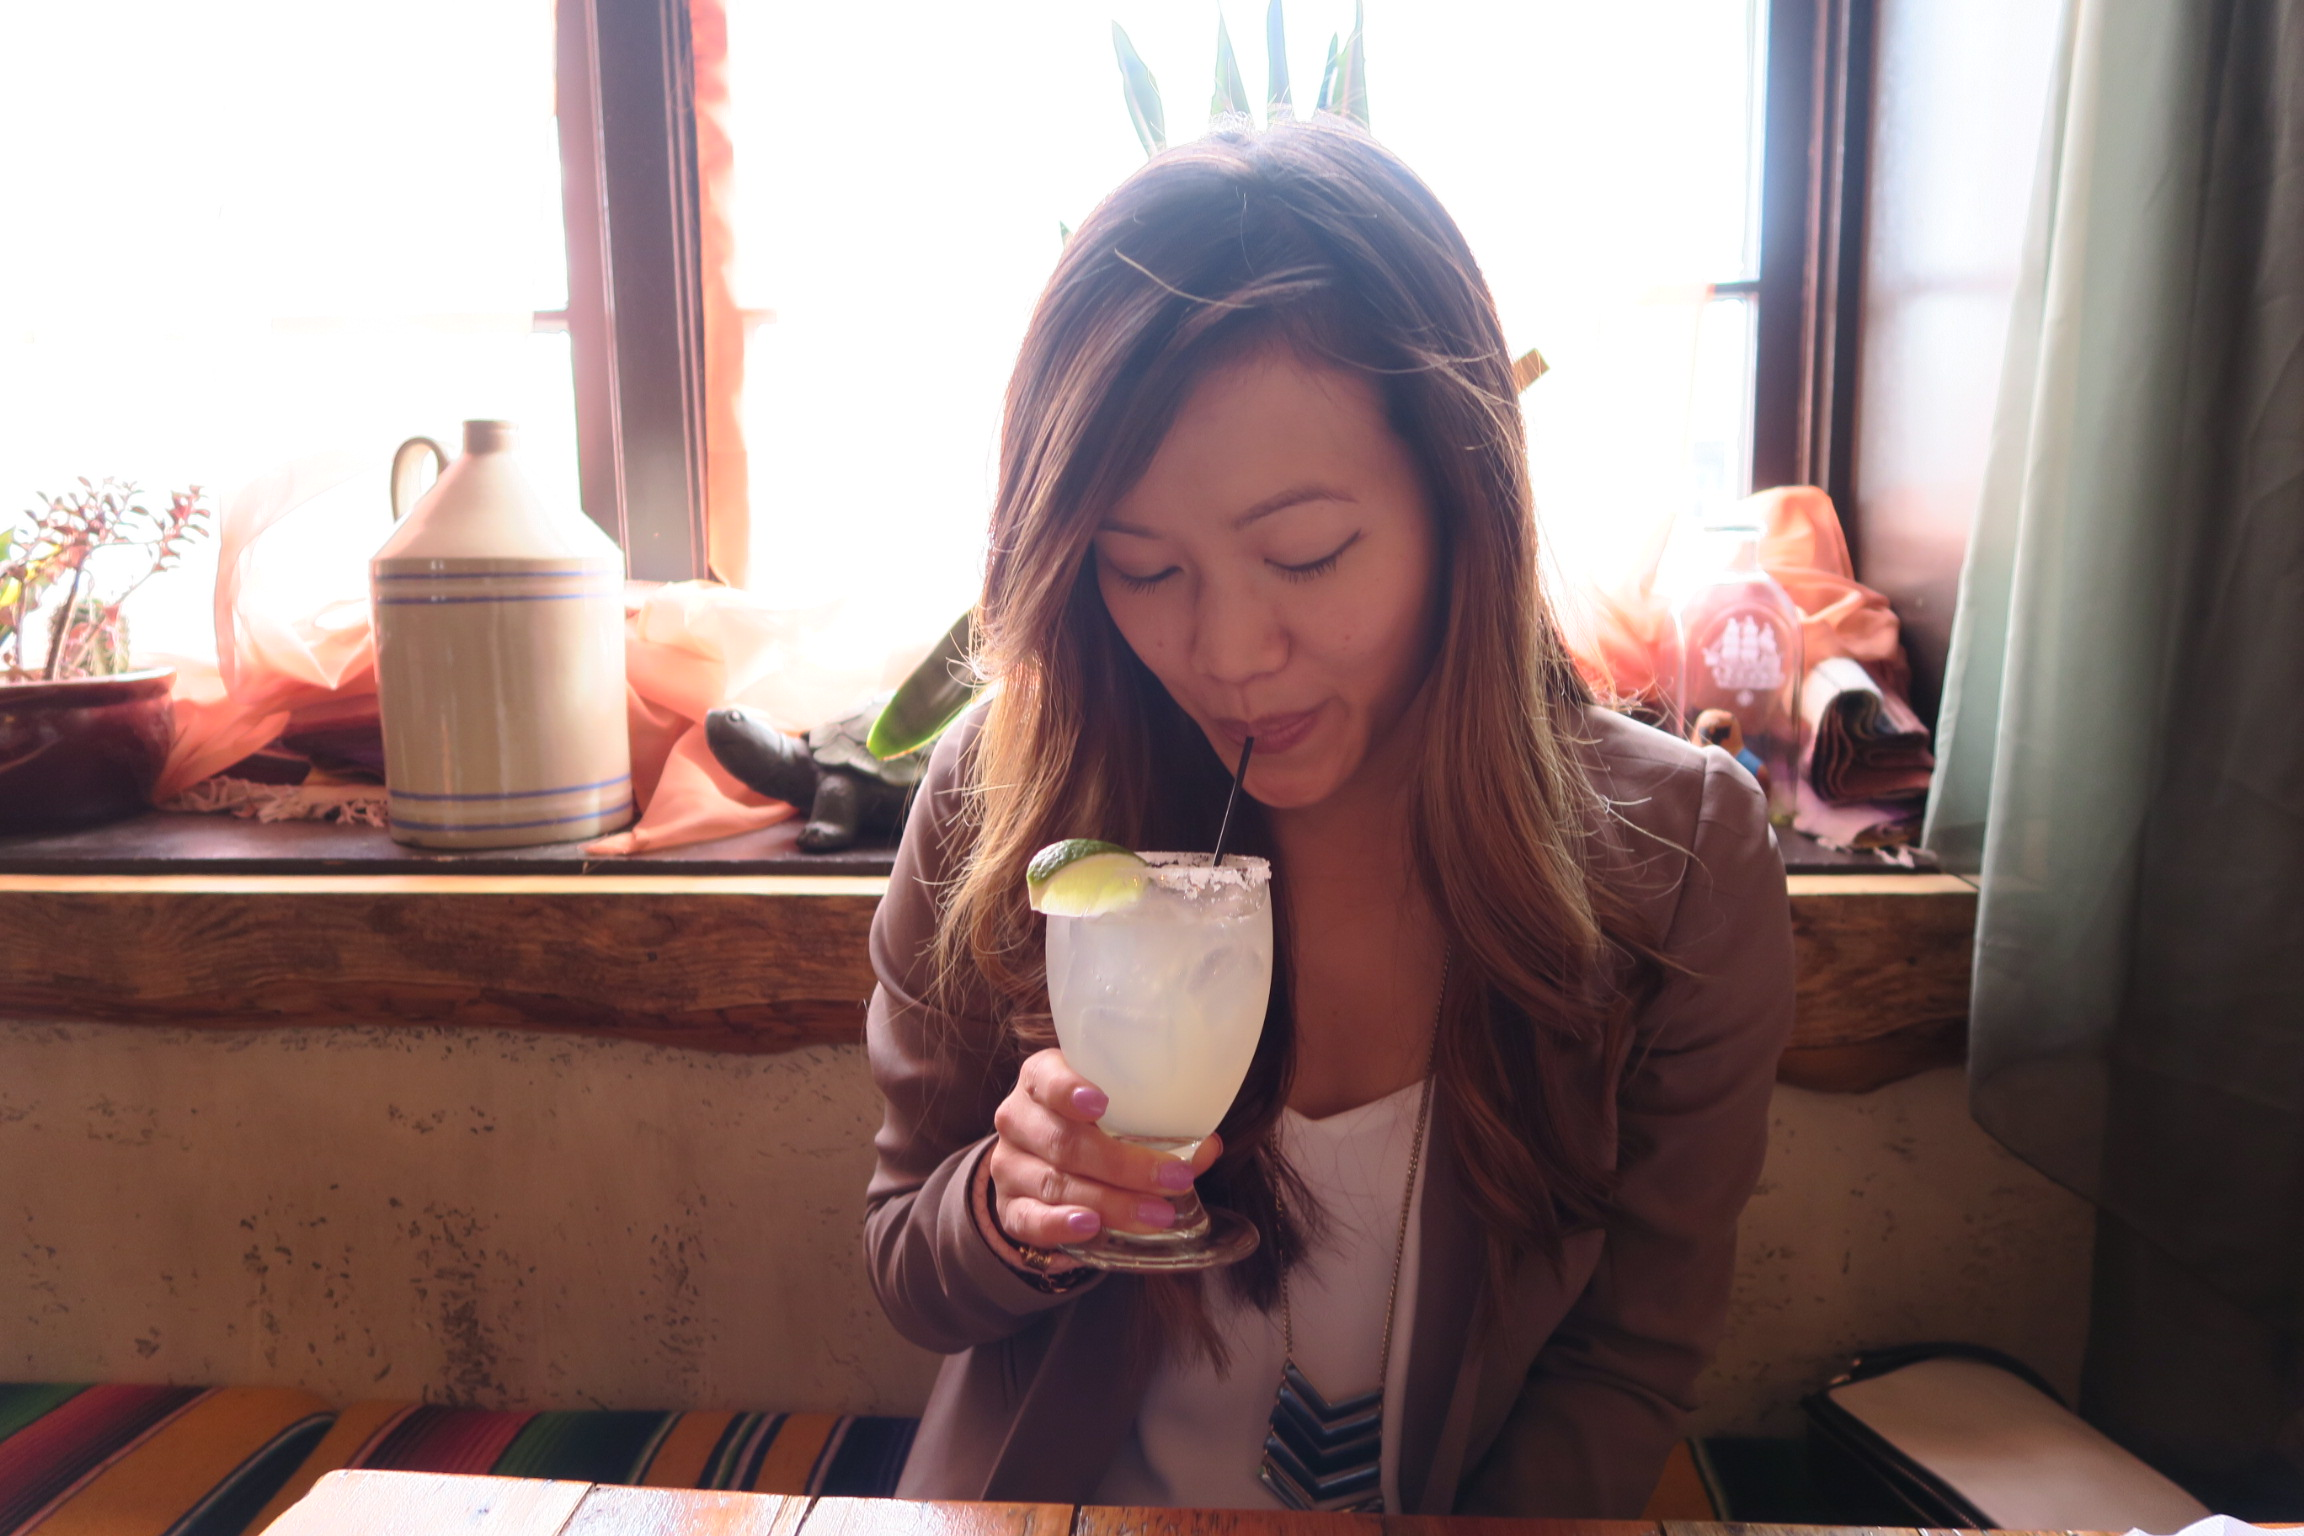 Testing the margs out